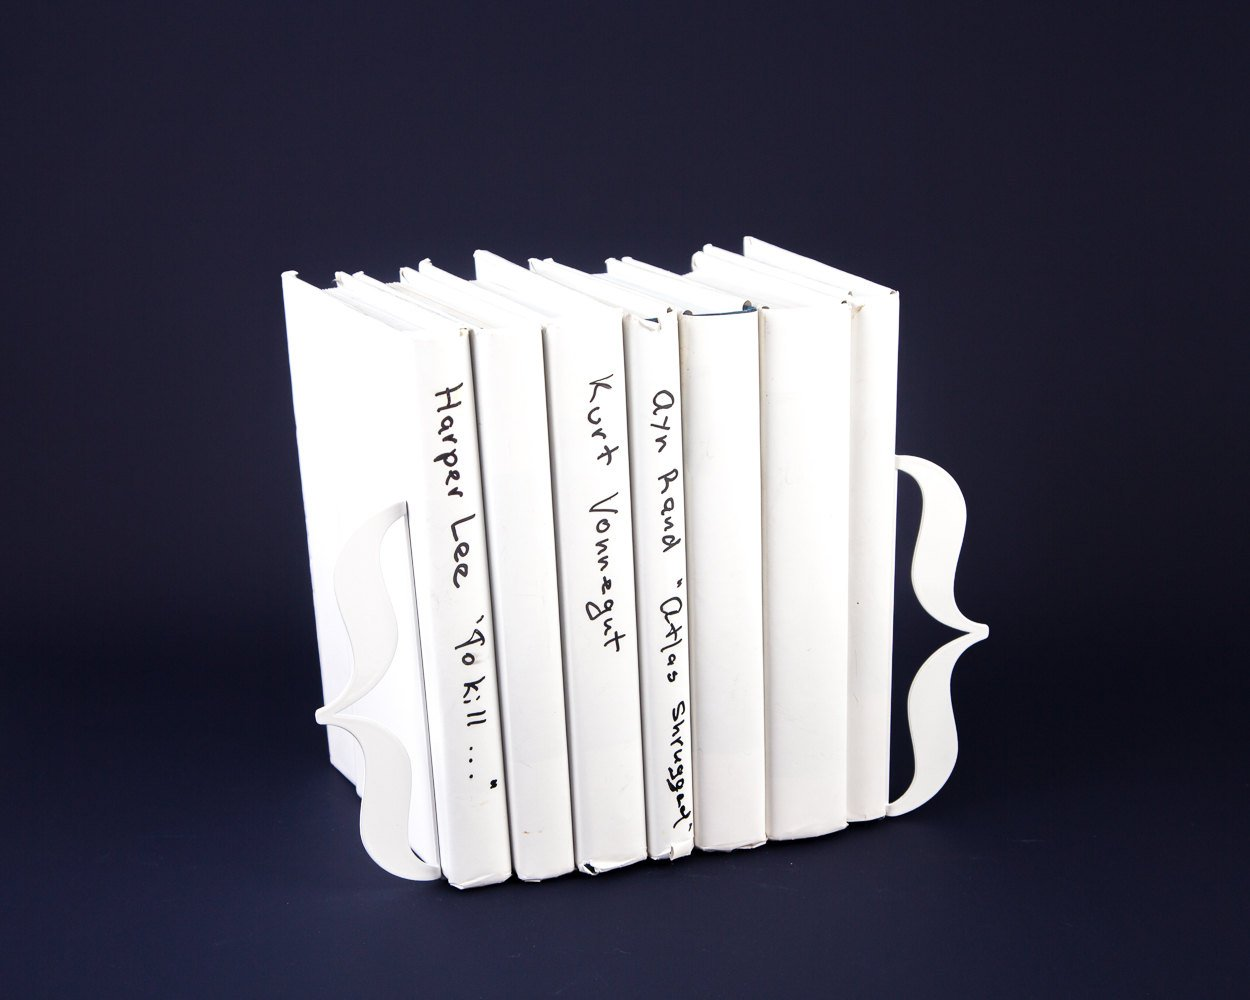 Bookish Bookends White Metal // curly braces // brackets // Perfect Nerdy Chic Housewarming Gift for a Reader // Free Shipping Worldwide